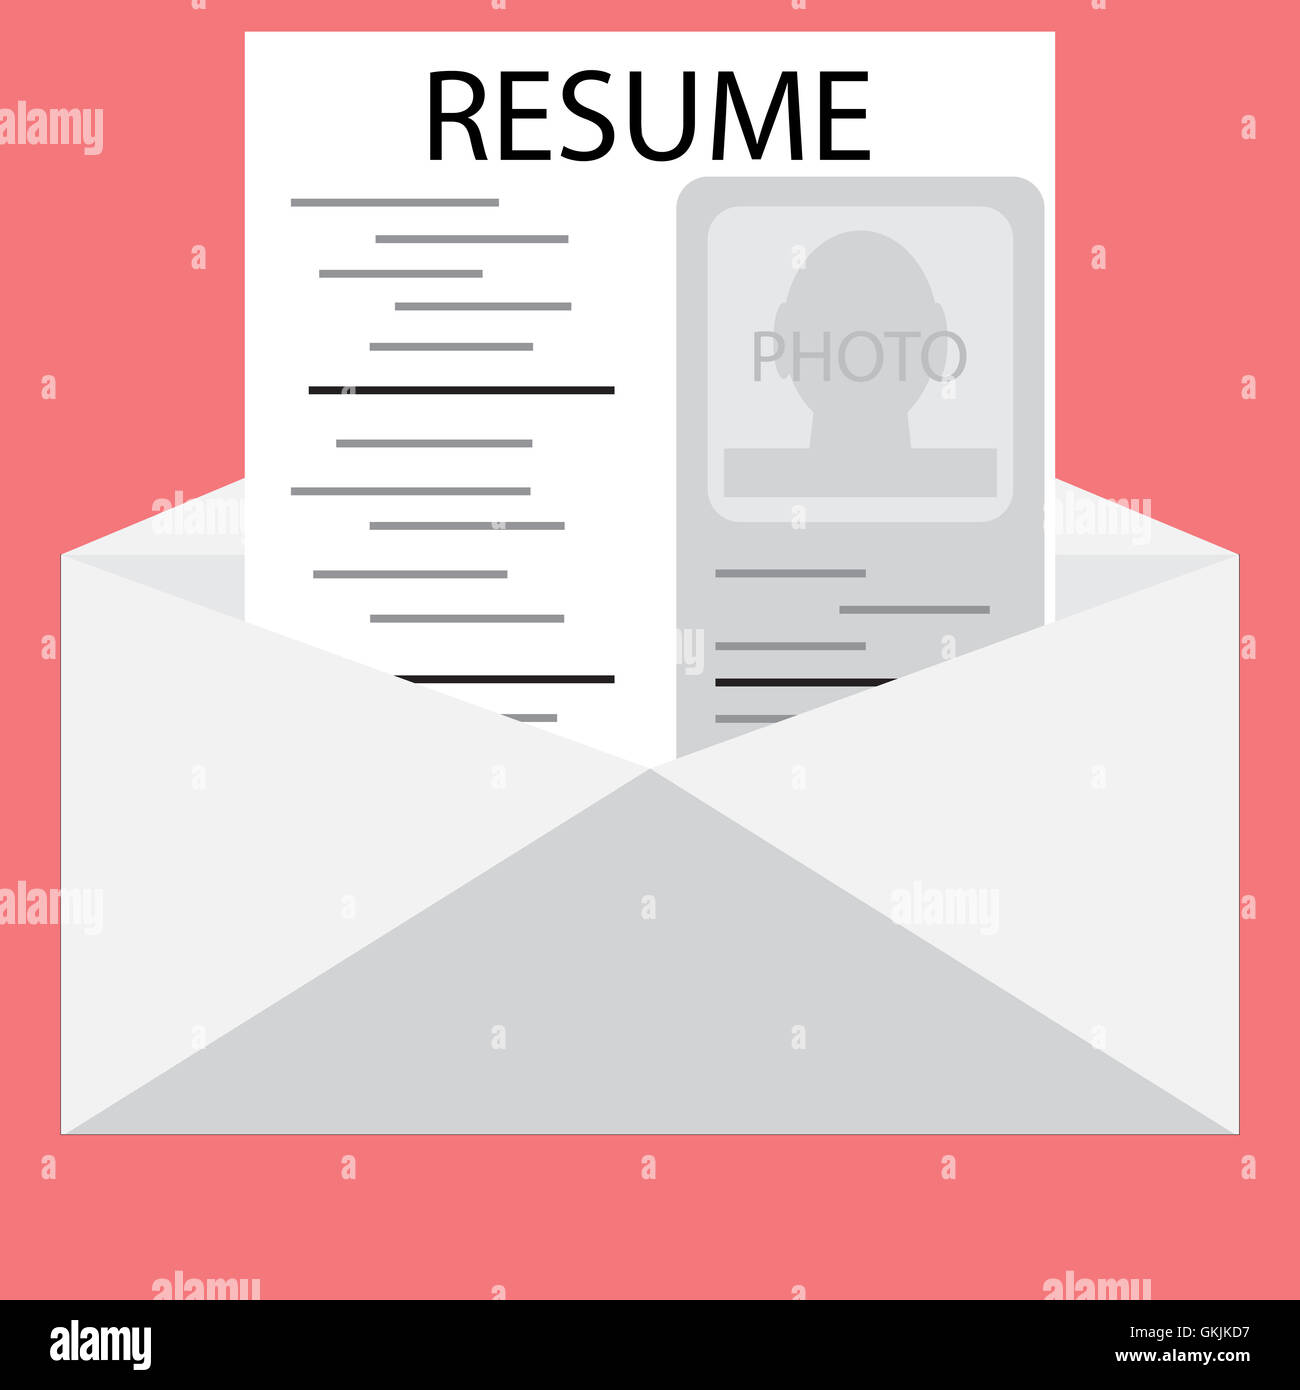 Templates Resume In An Envelope Invite To Job Interview Stock